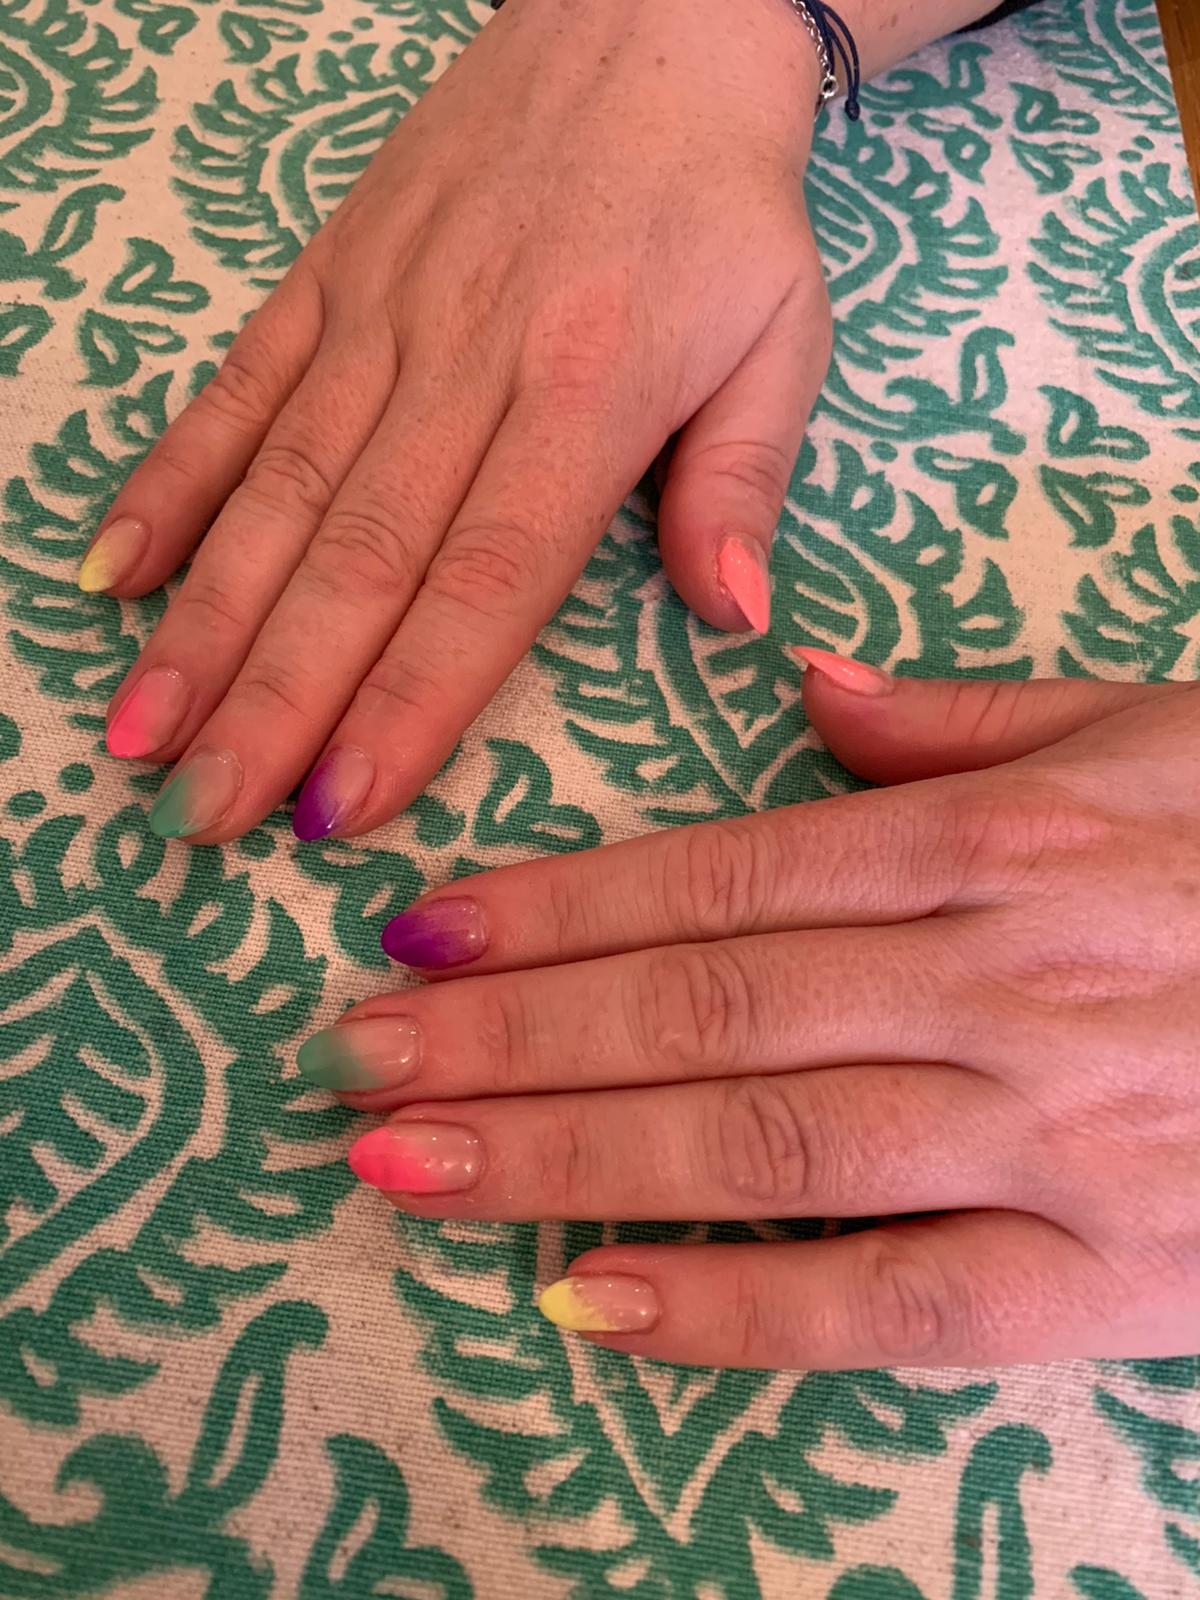 nails by natalie rose london mobile manicure autumn vibes nails art nails by natalie rose london mobile manicure autumn vibes nails art Ombré tips